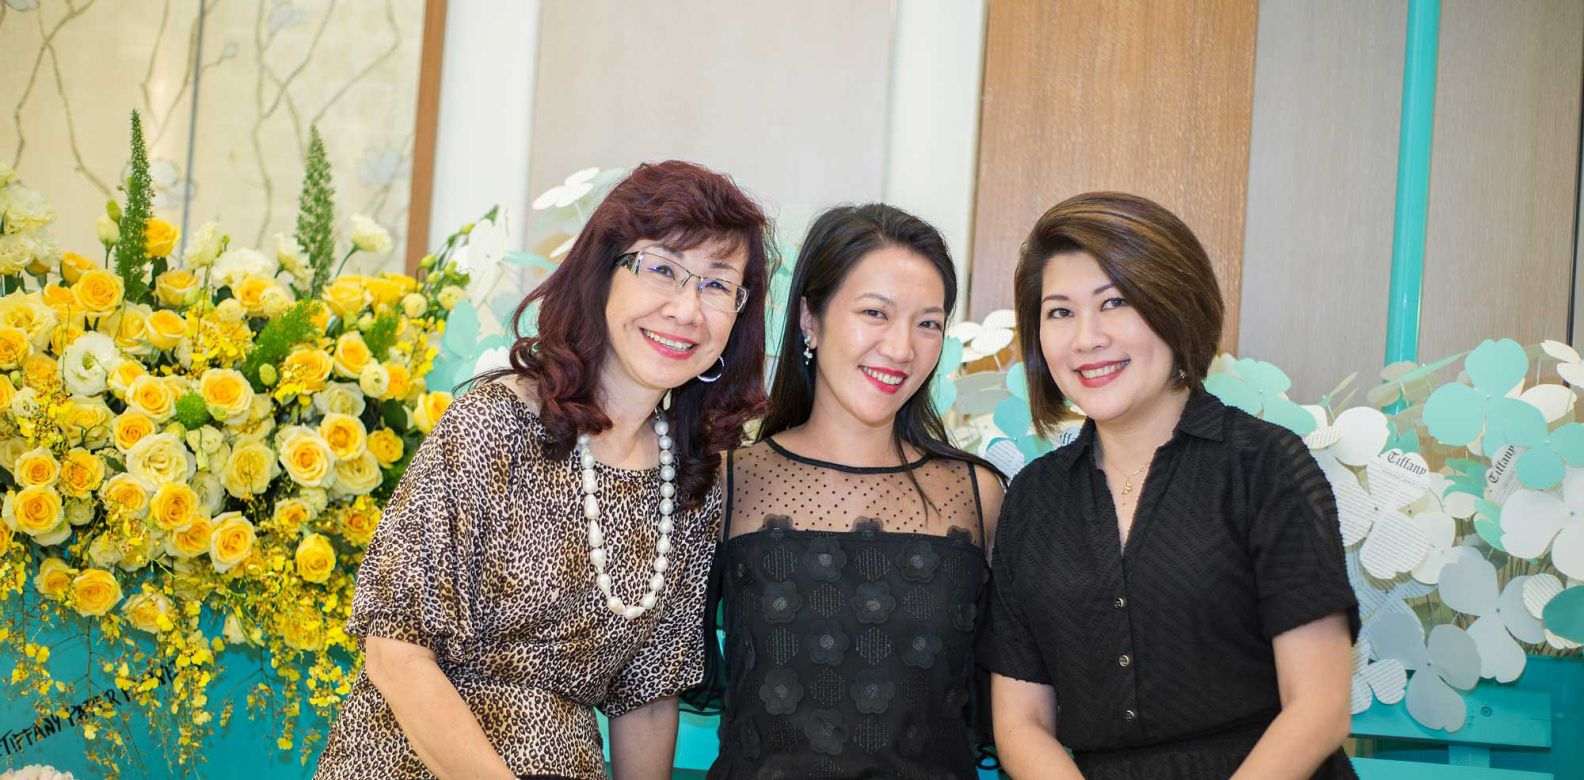 Florence Fang, Wong Wei Ling and Cesarine Lim